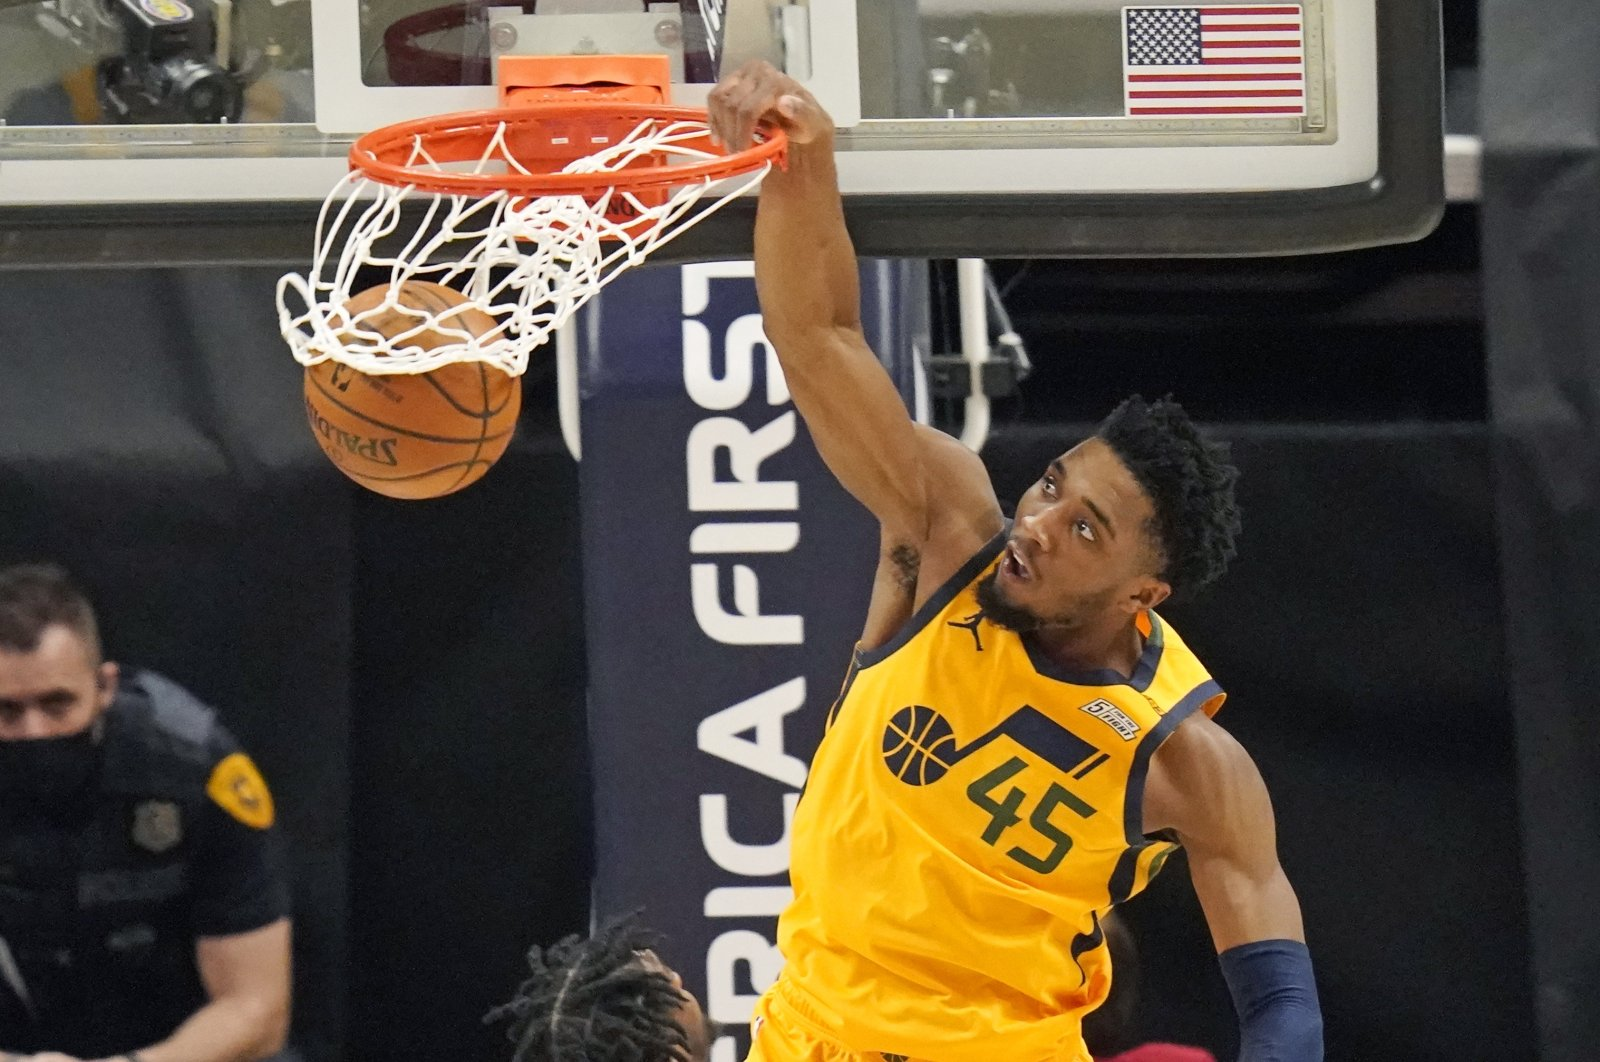 Utah Jazz guard Donovan Mitchell dunks against the Charlotte Hornets in an NBA basketball game in Salt Lake City, U.S., Feb. 22, 2021. (AP Photo)